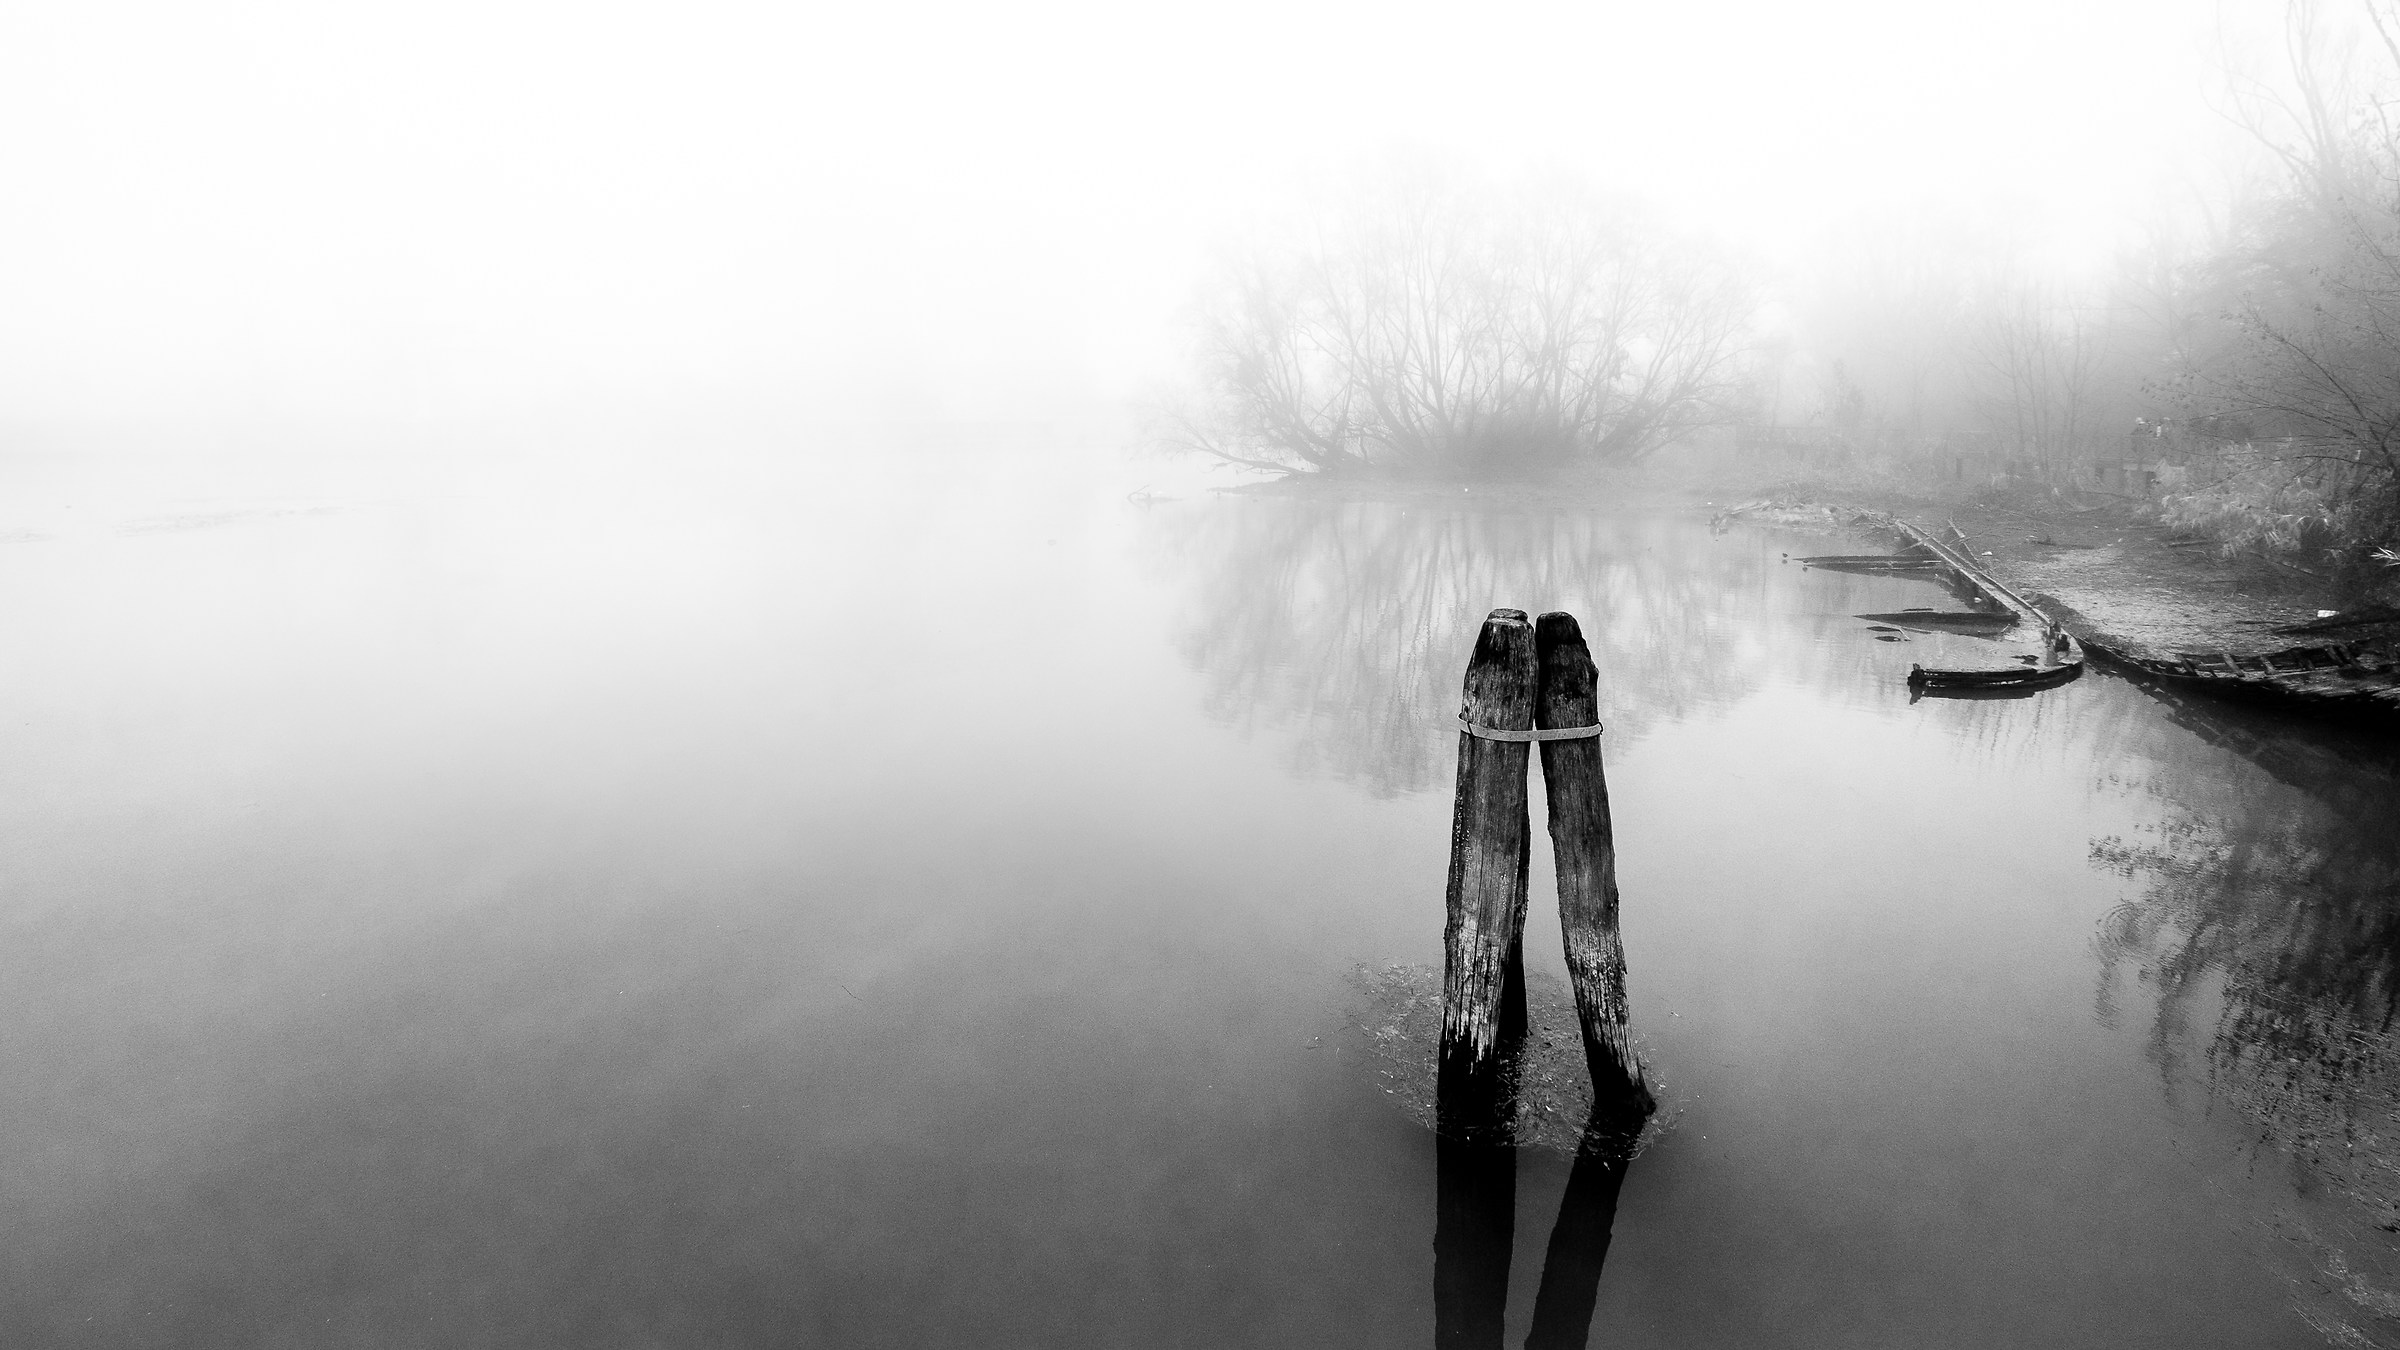 Will remain shrouded in mist...